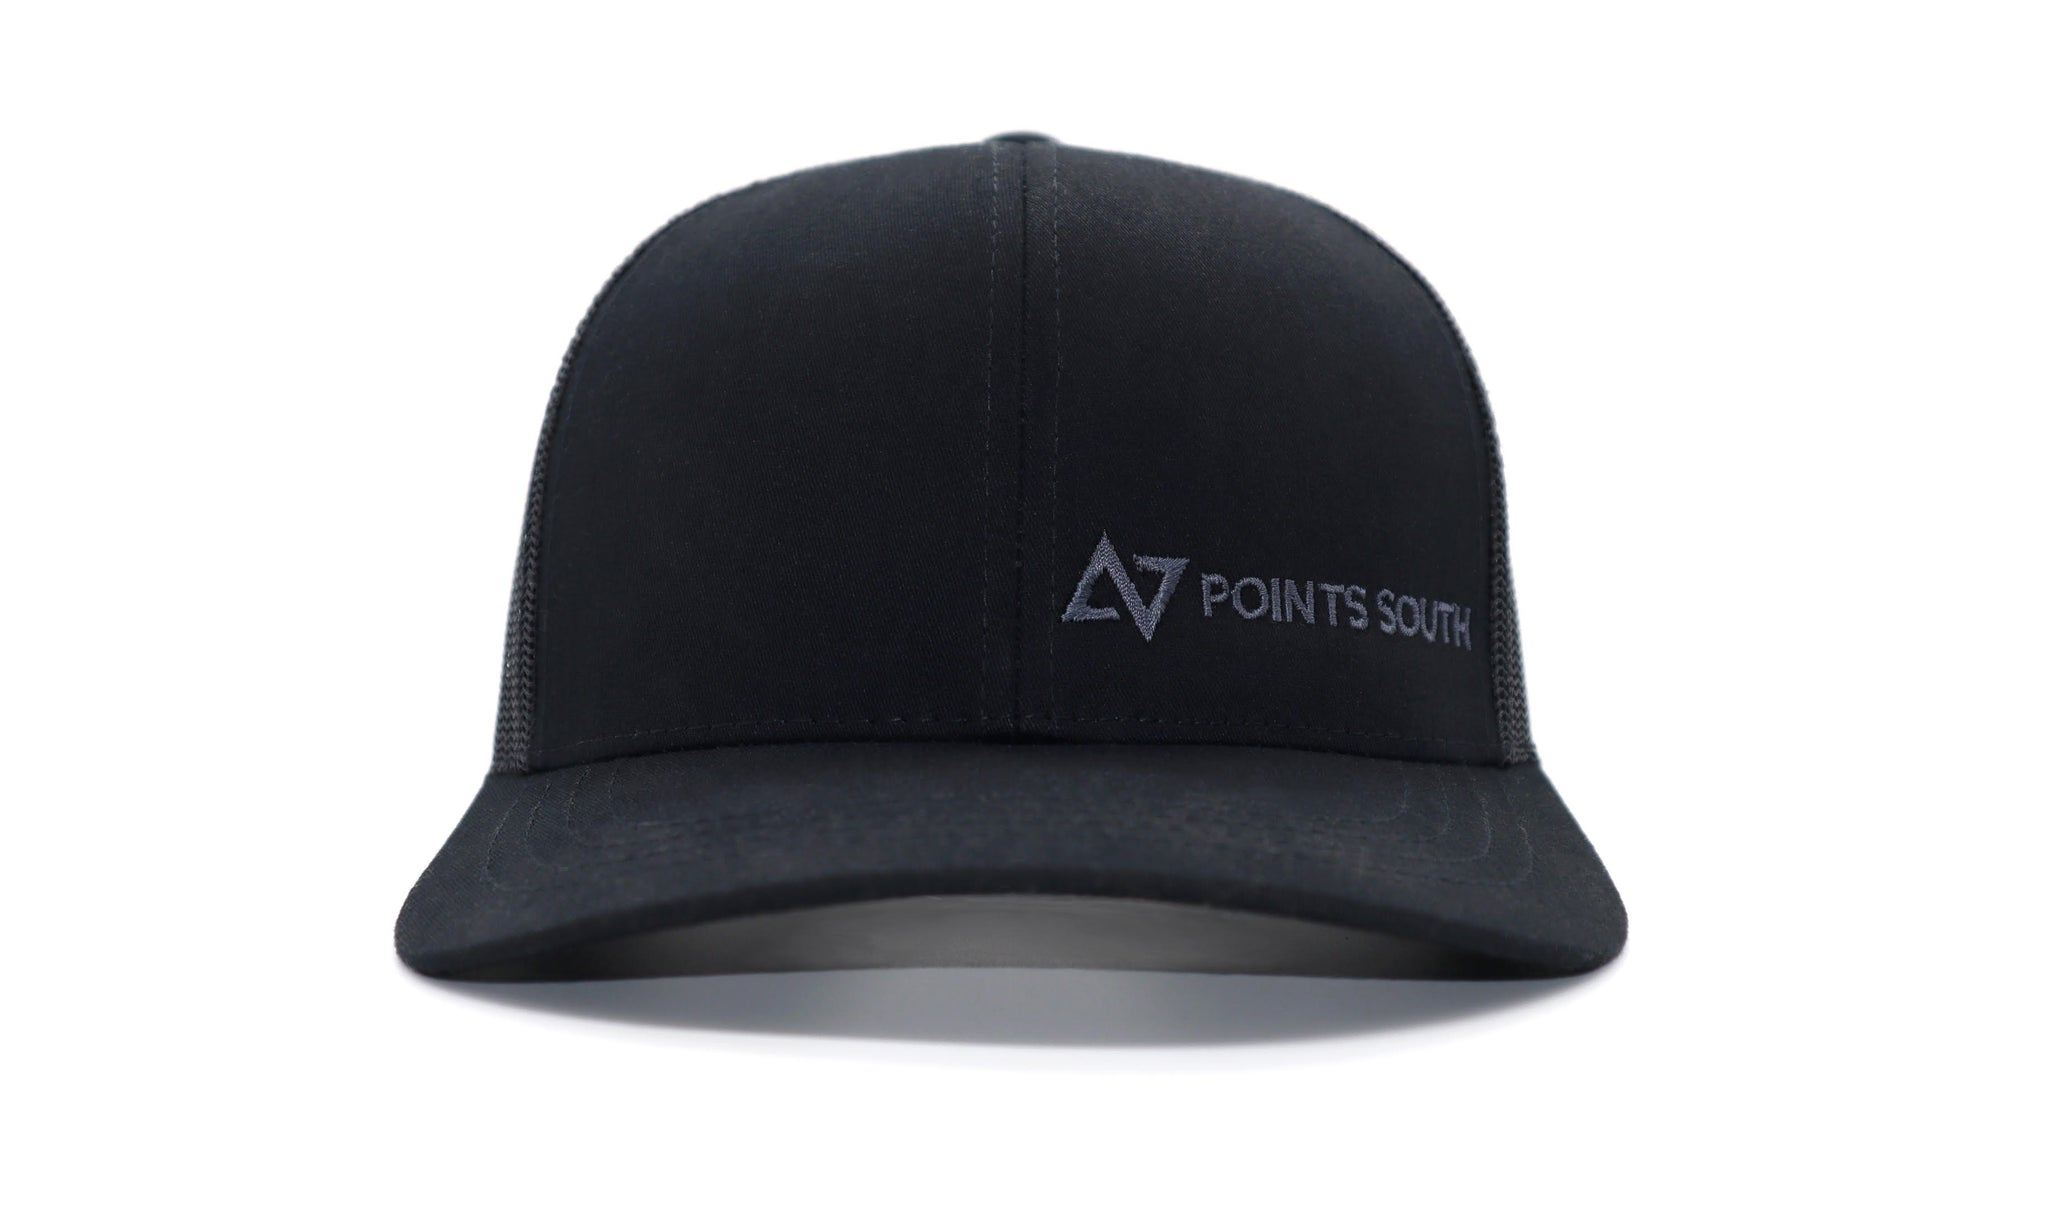 PointsSouth Trucker Cap